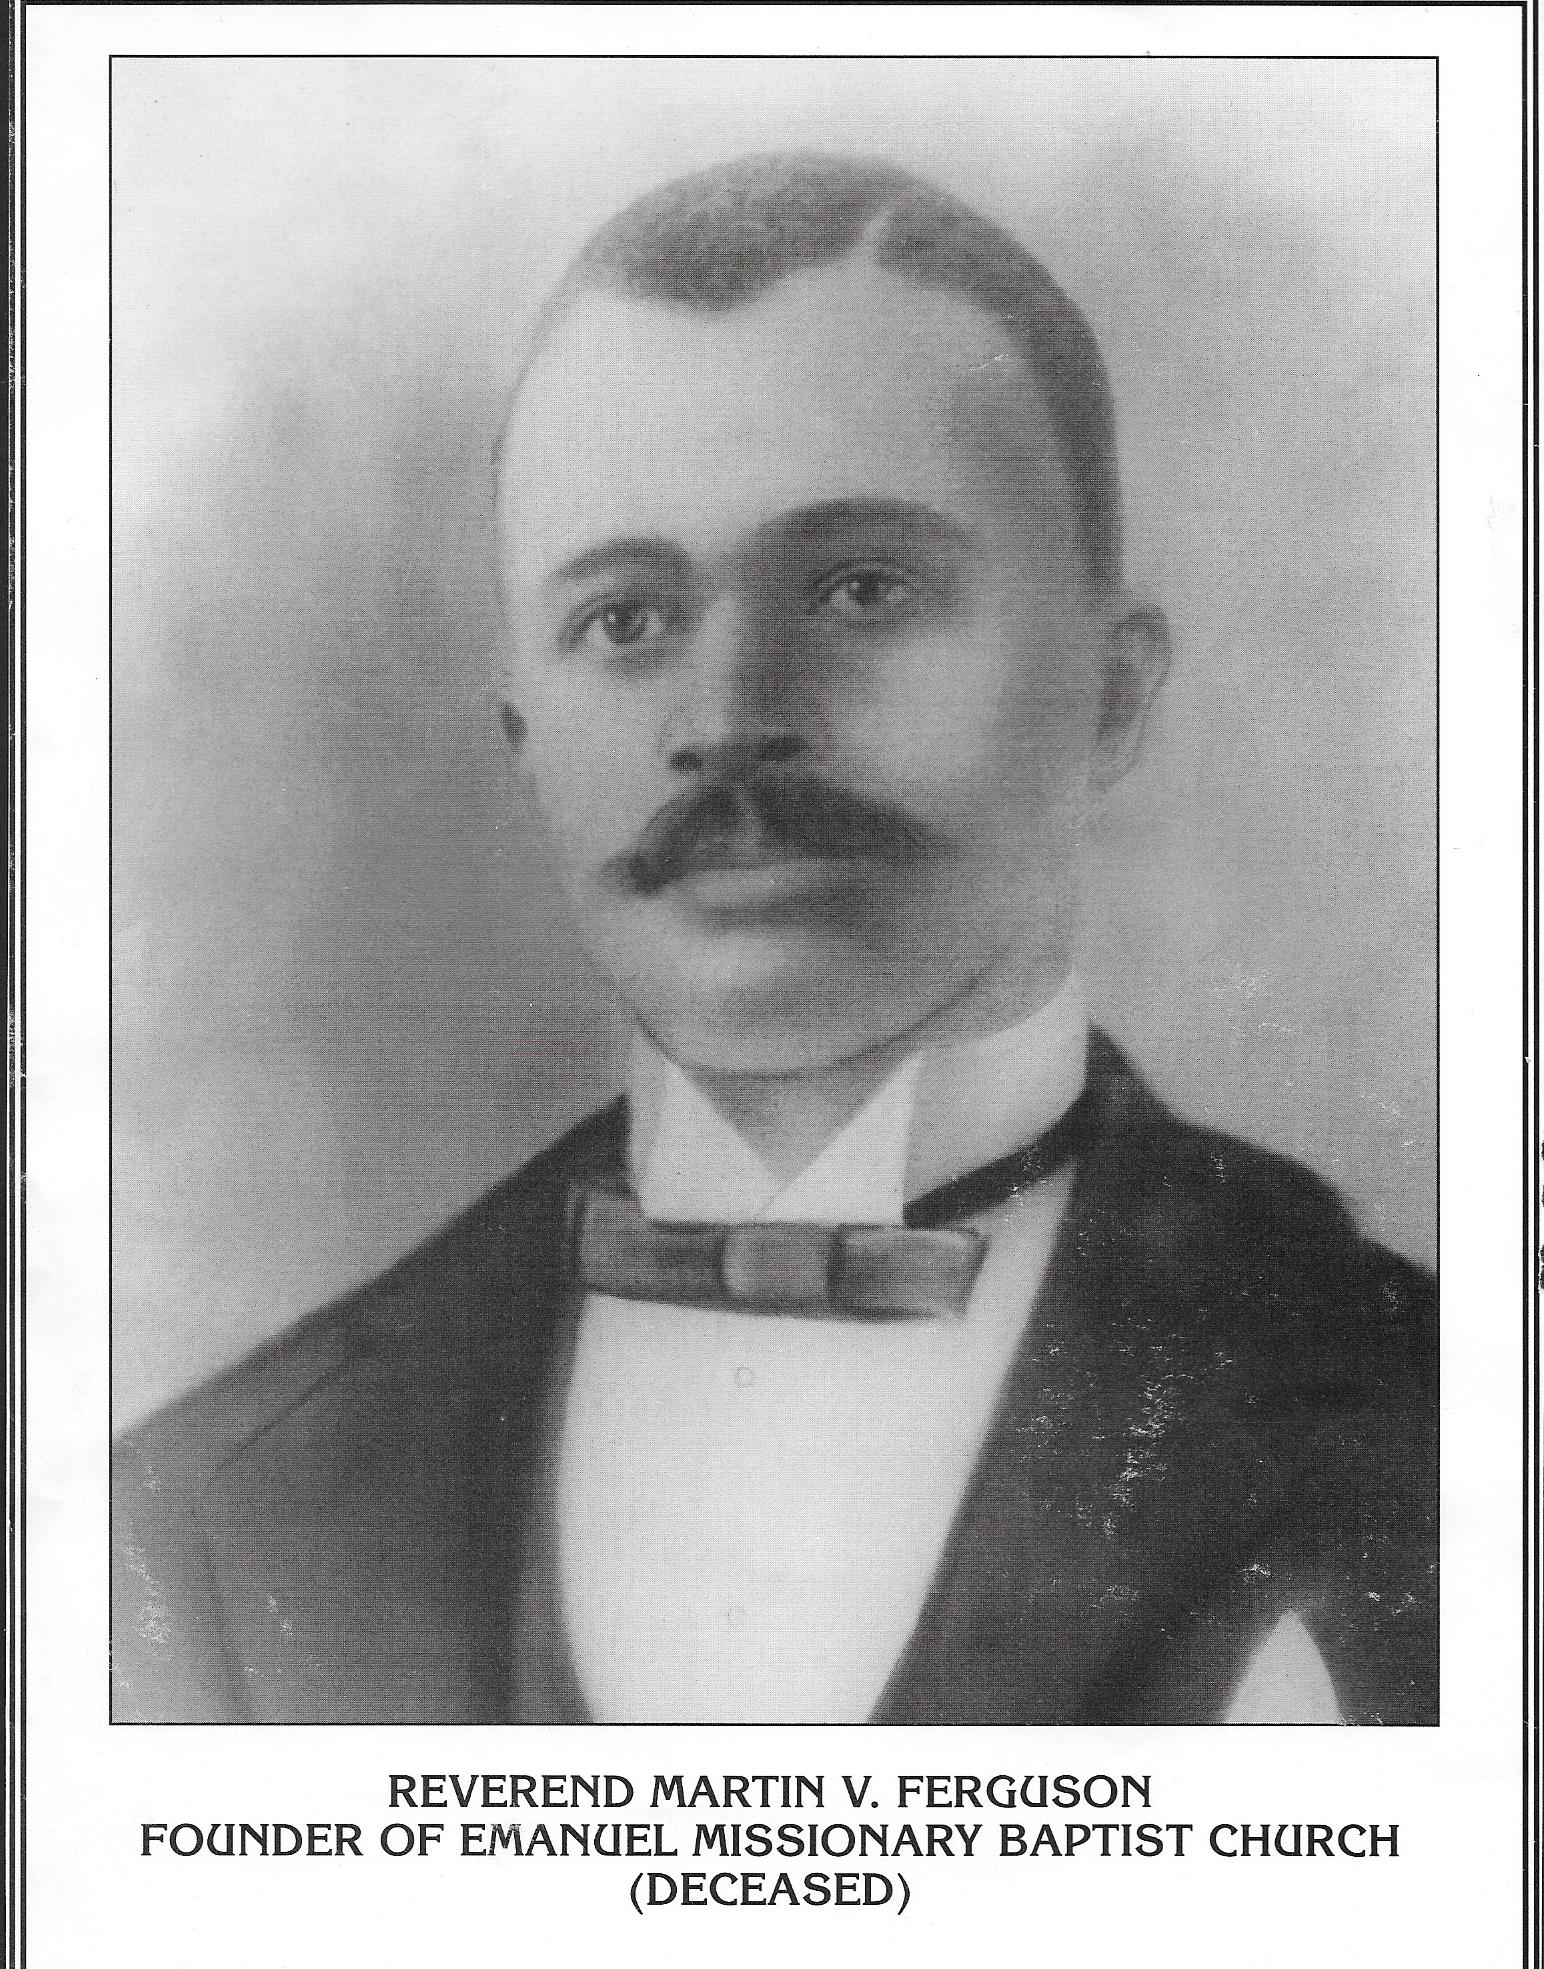 Rev. Ferguson Founder of Emanuel